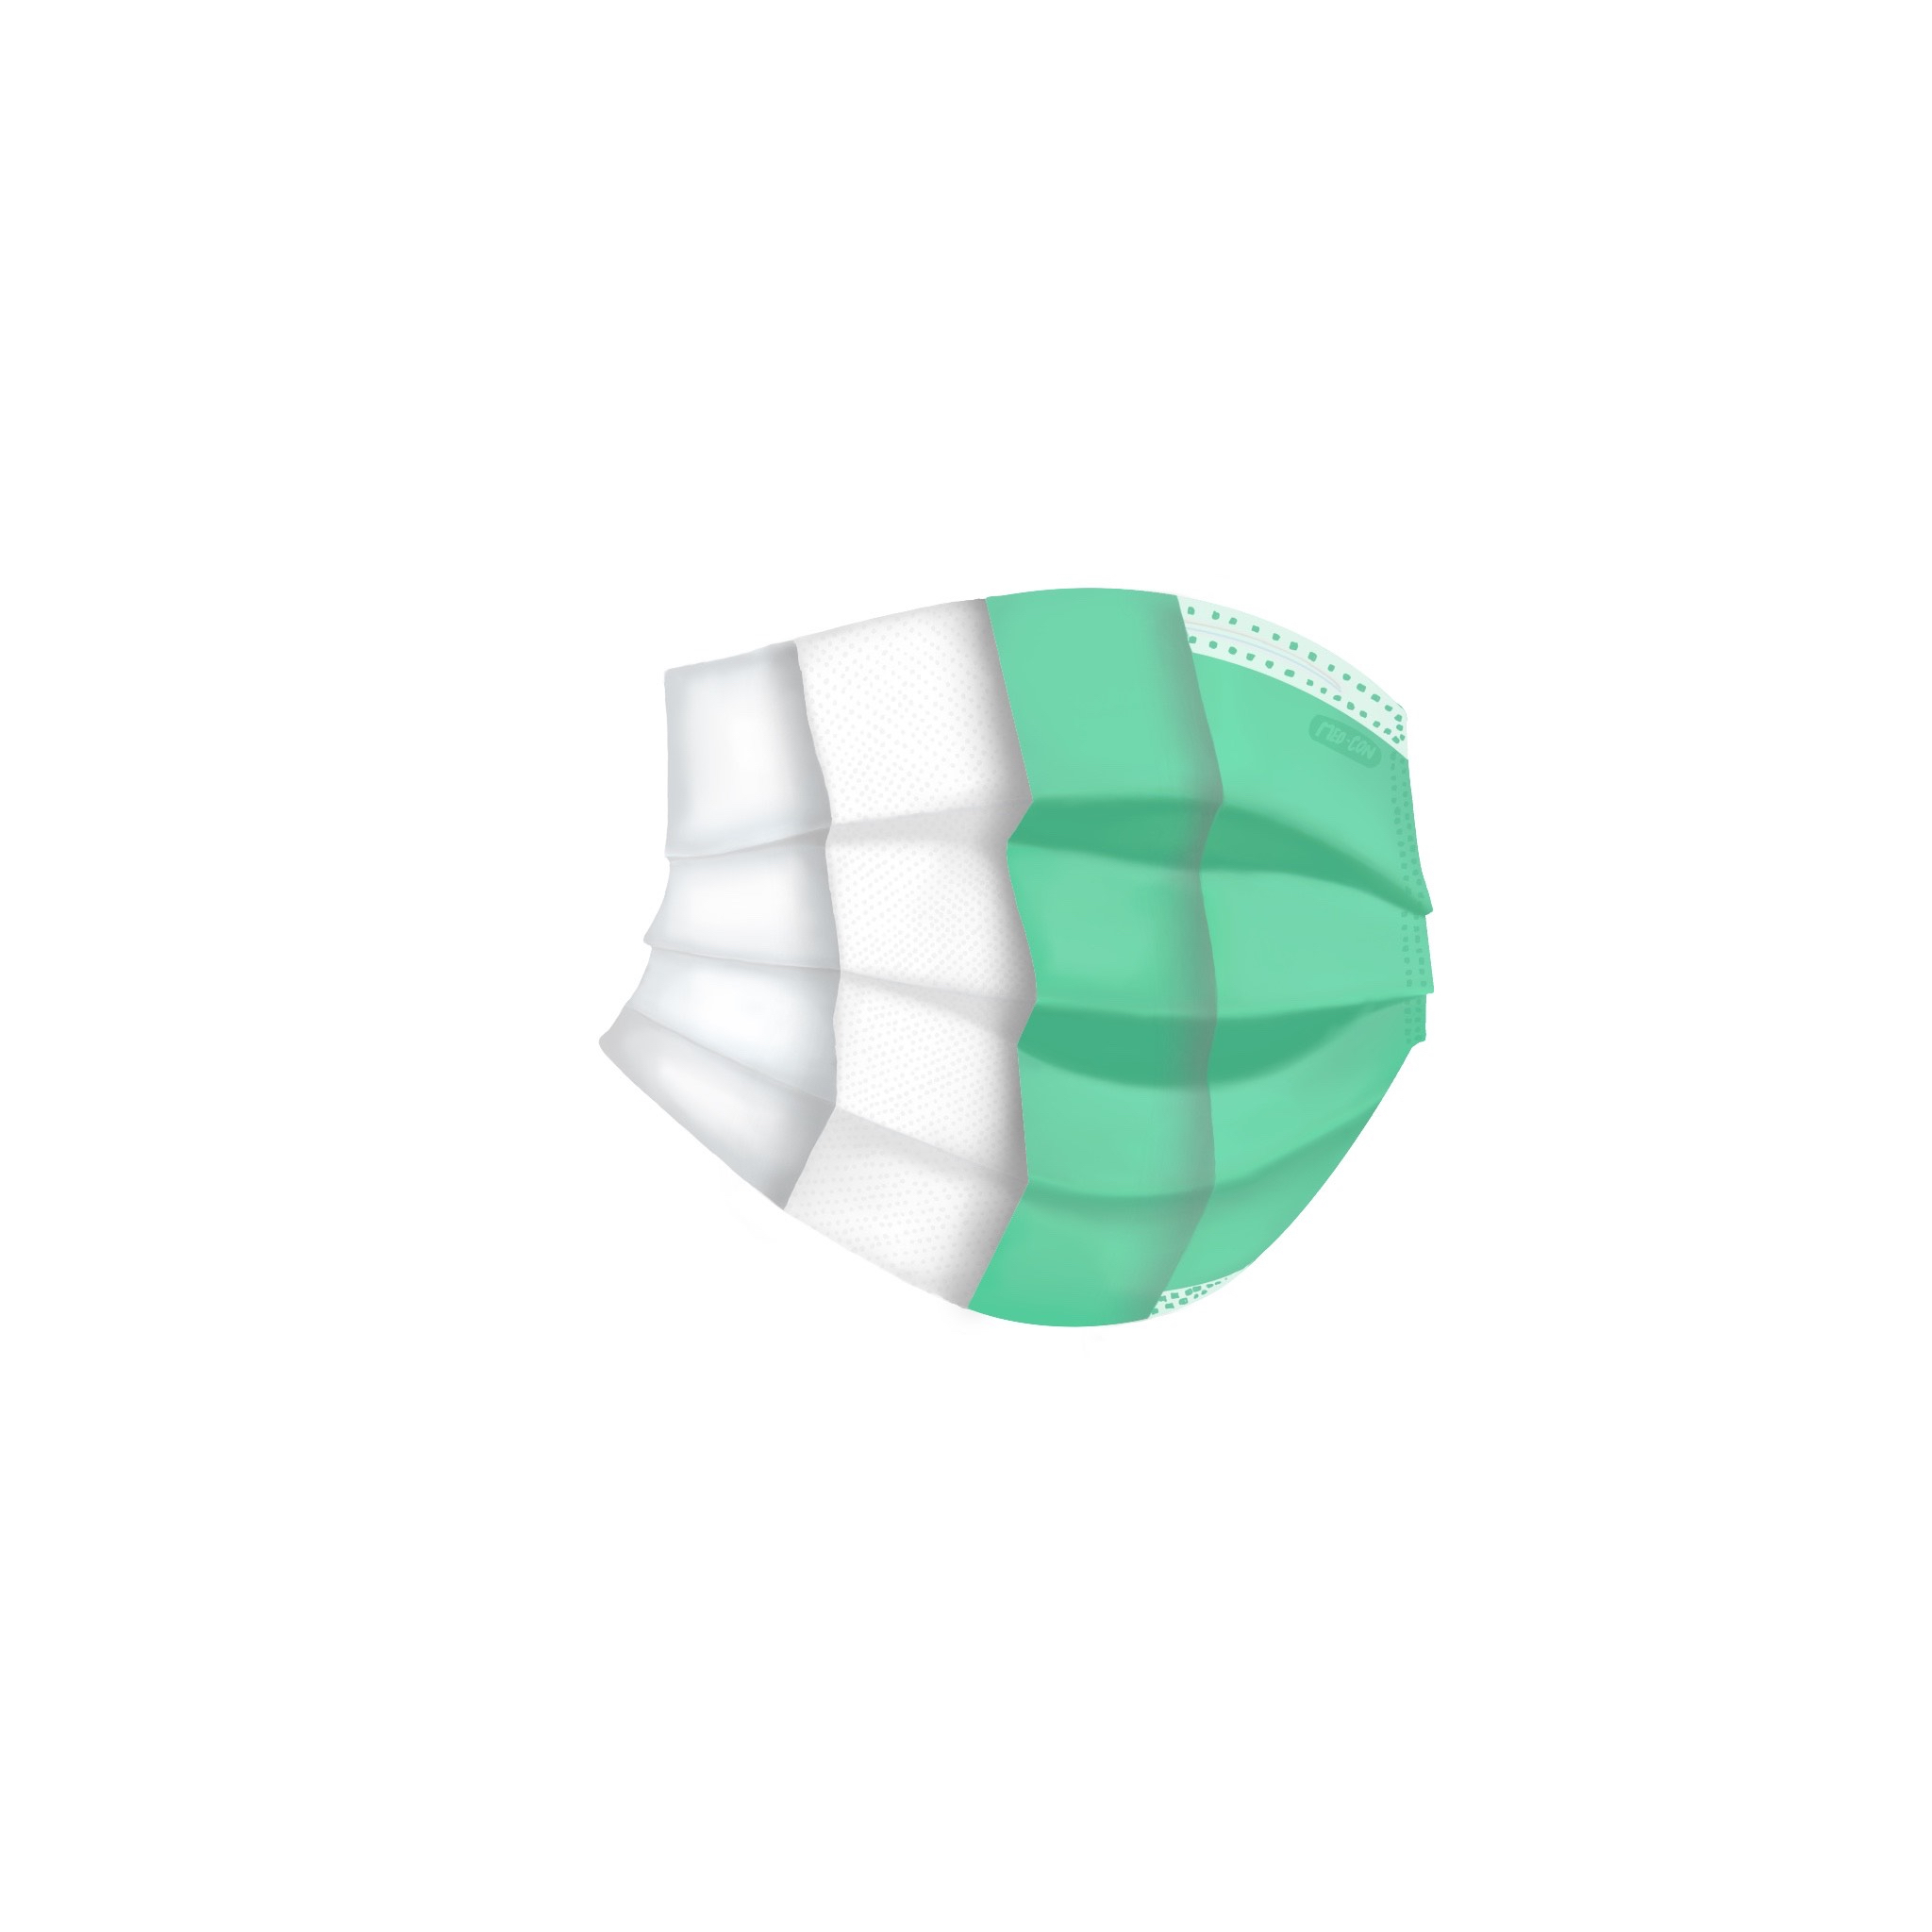 Level 3 Face Mask With Loops (50 units)